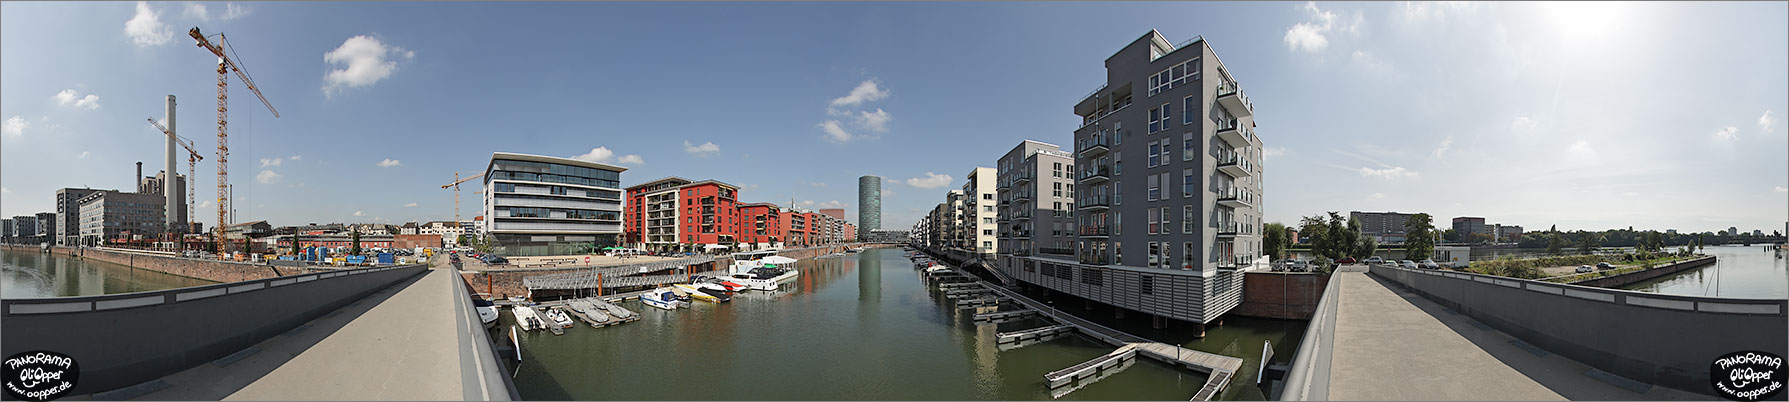 Panorama Frankfurt am Main - Westhafen - p1122 - (c) by Oliver Opper